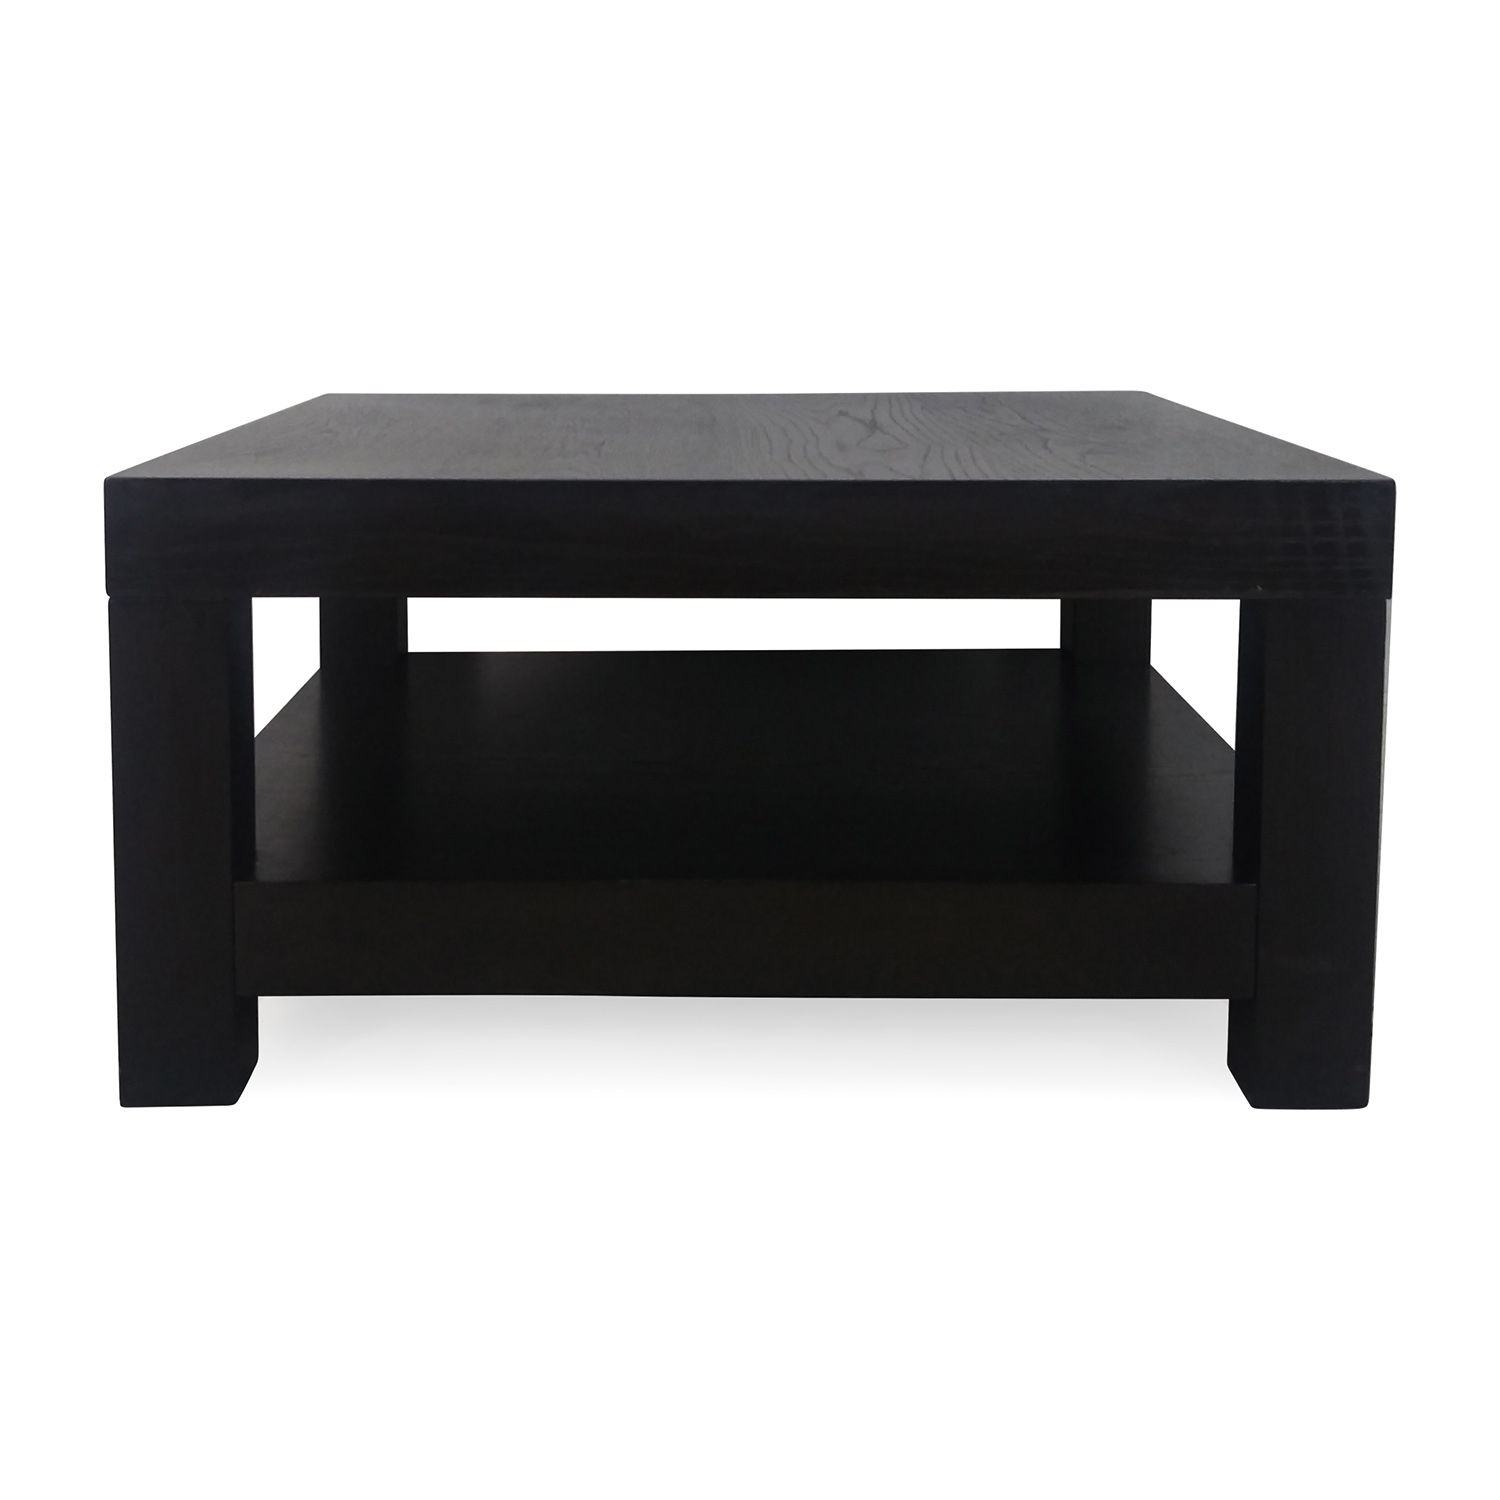 55% OFF Two Toned Wood Coffee Table Tables